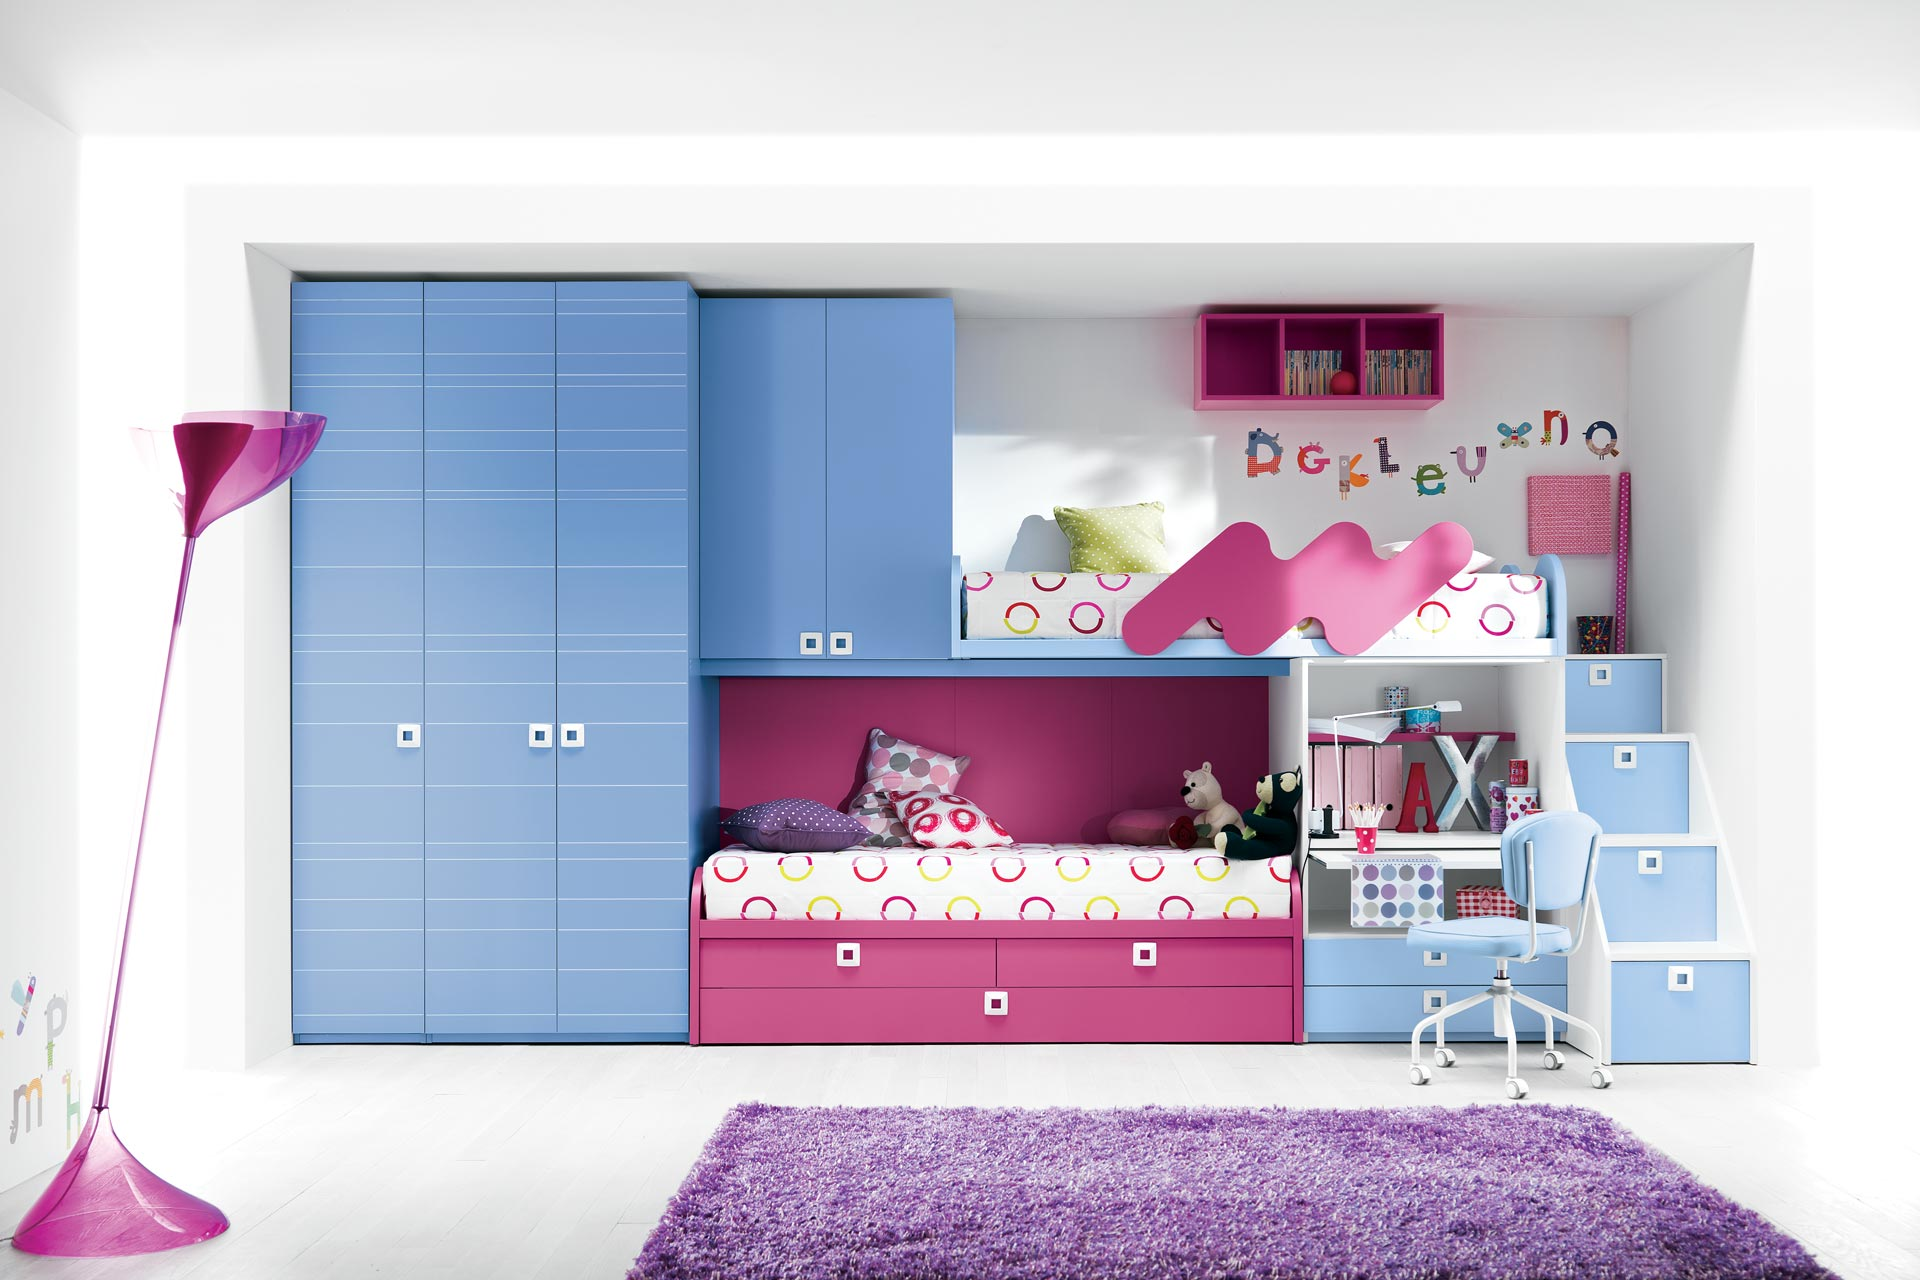 Blue And Pink Bunk Beds For Girls Inside Modern Bedroom With Blue Wardrobe  Cabinets